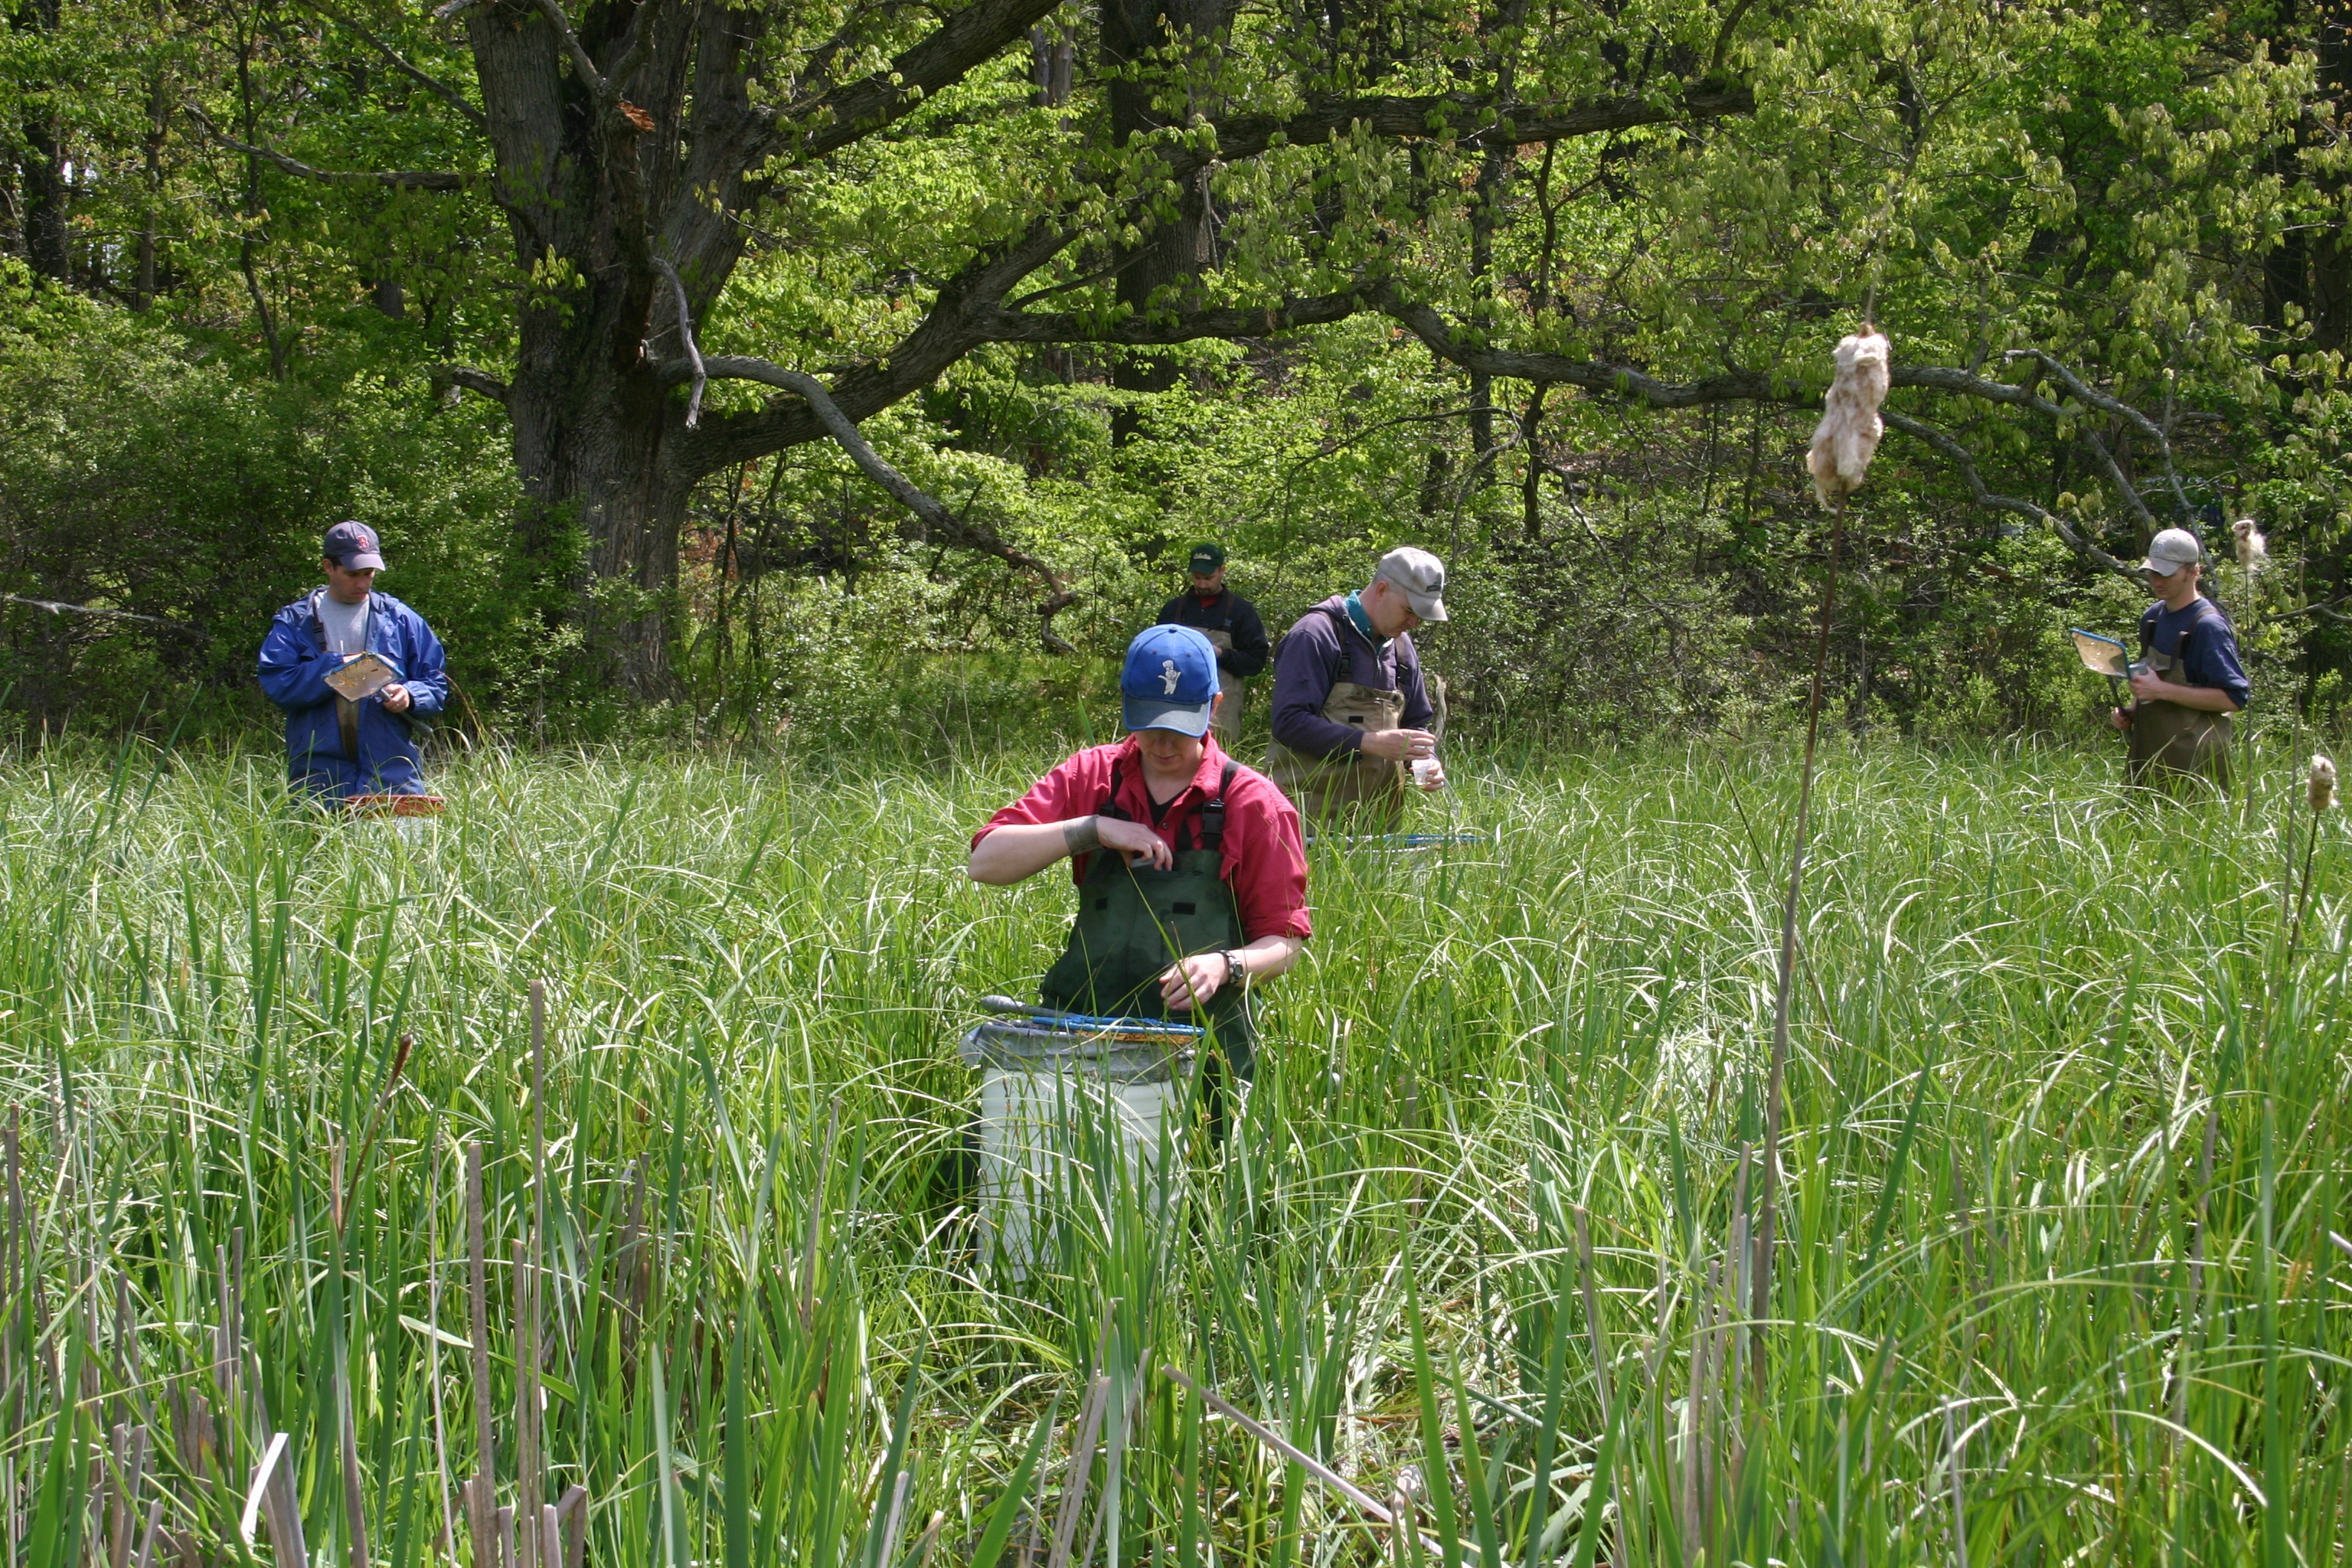 Field crews collecting tadpoles at U-M's E.S. George Reserve in Pinckney, Mich. Image credit: Michael Benard